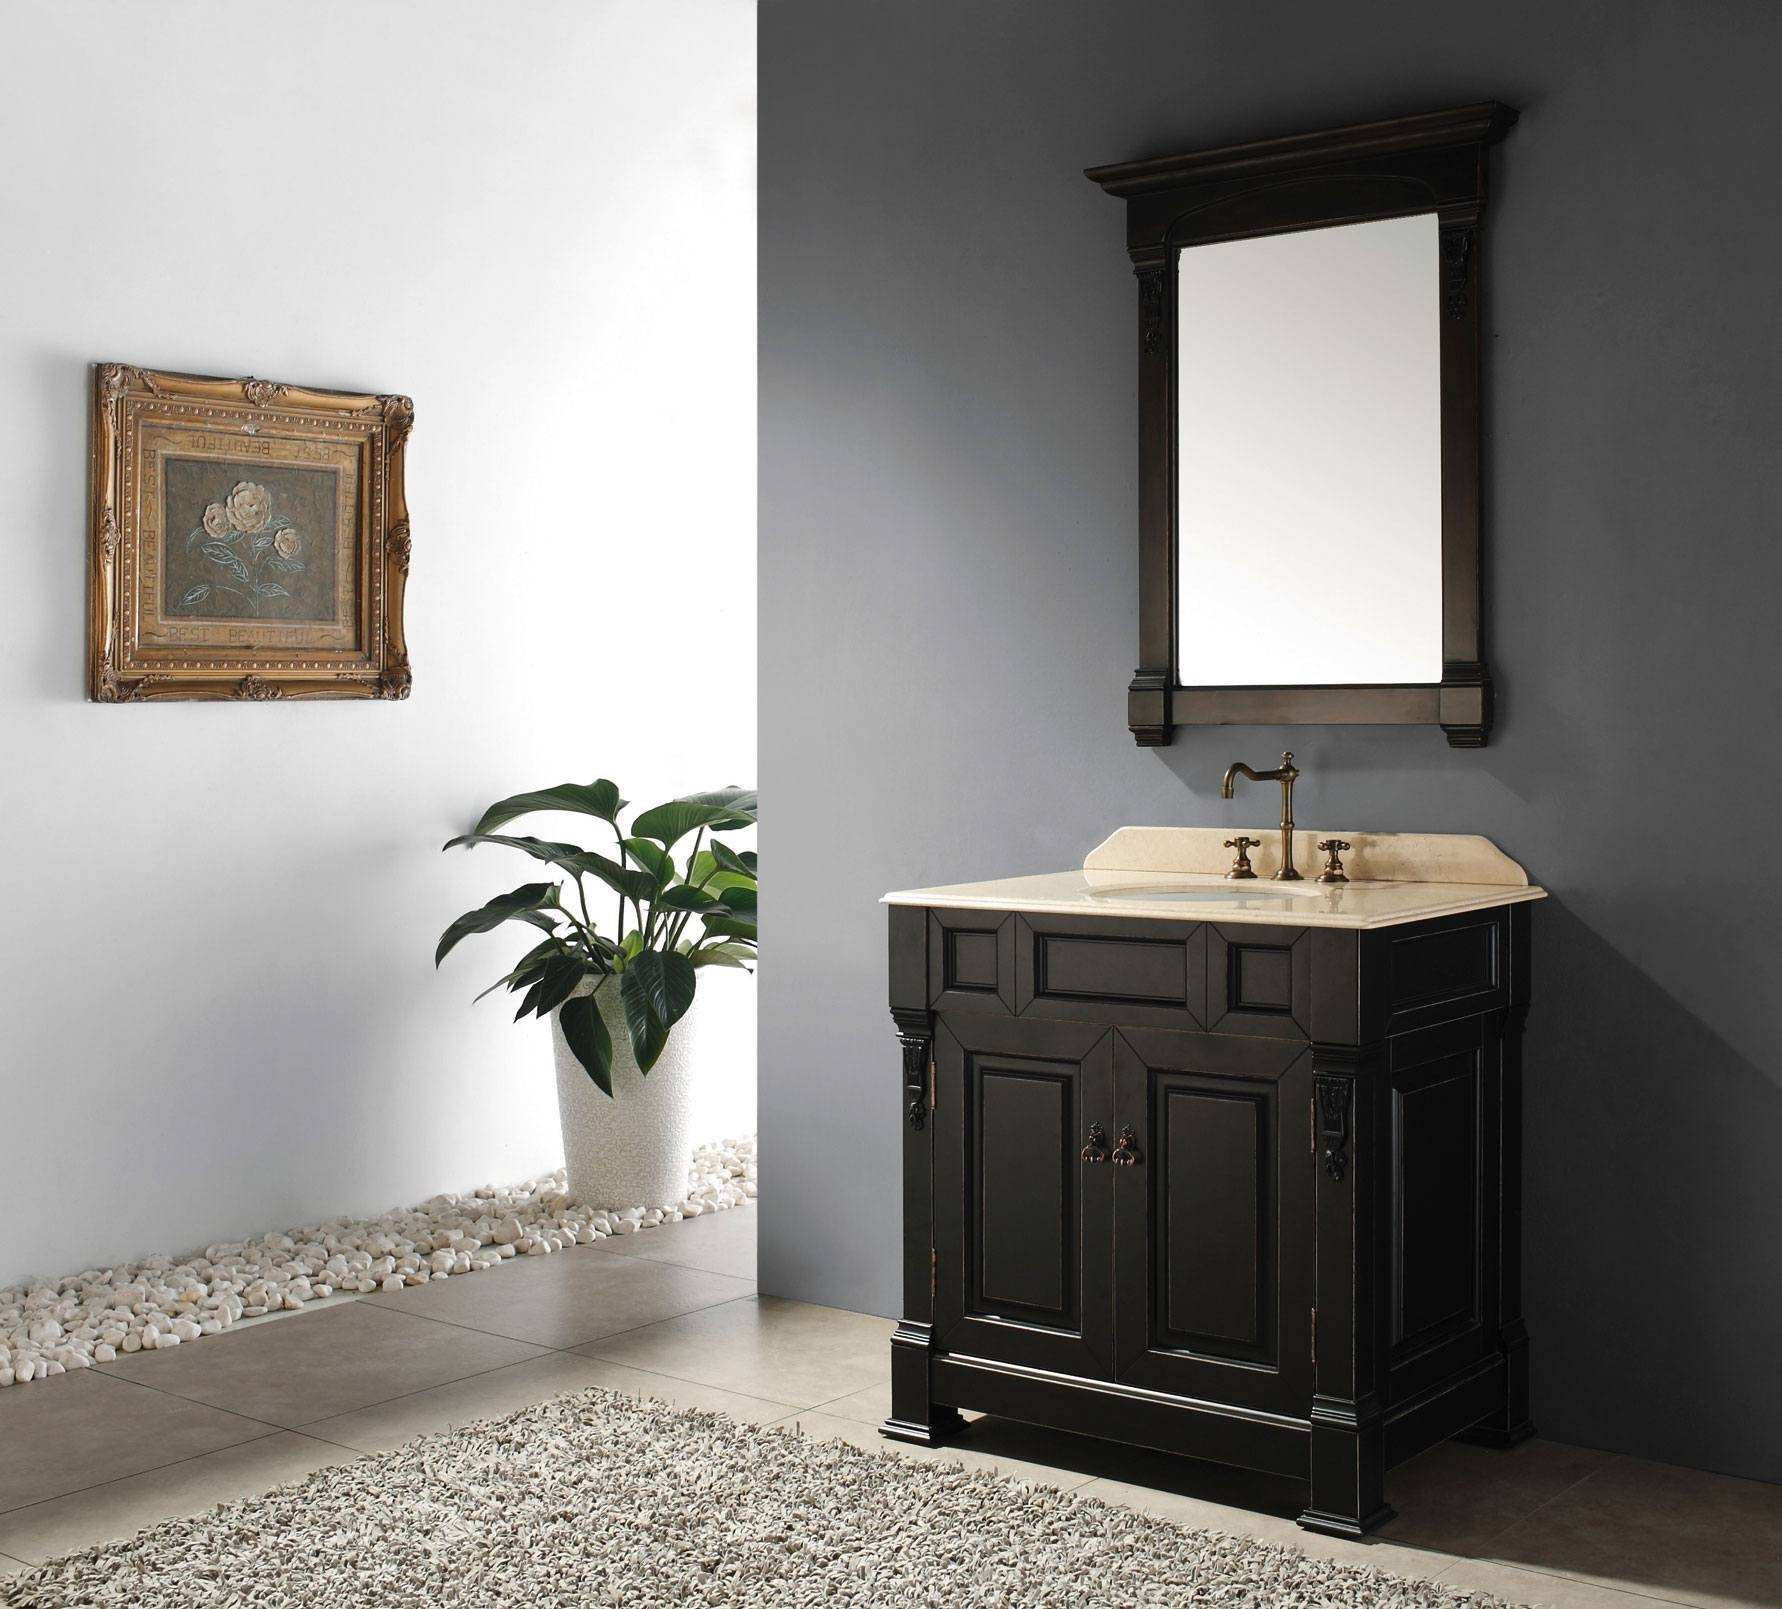 Bathroom: Antique Style Of Lowes Bathroom Mirror For Bathroom with Retro Bathroom Mirrors (Image 6 of 25)